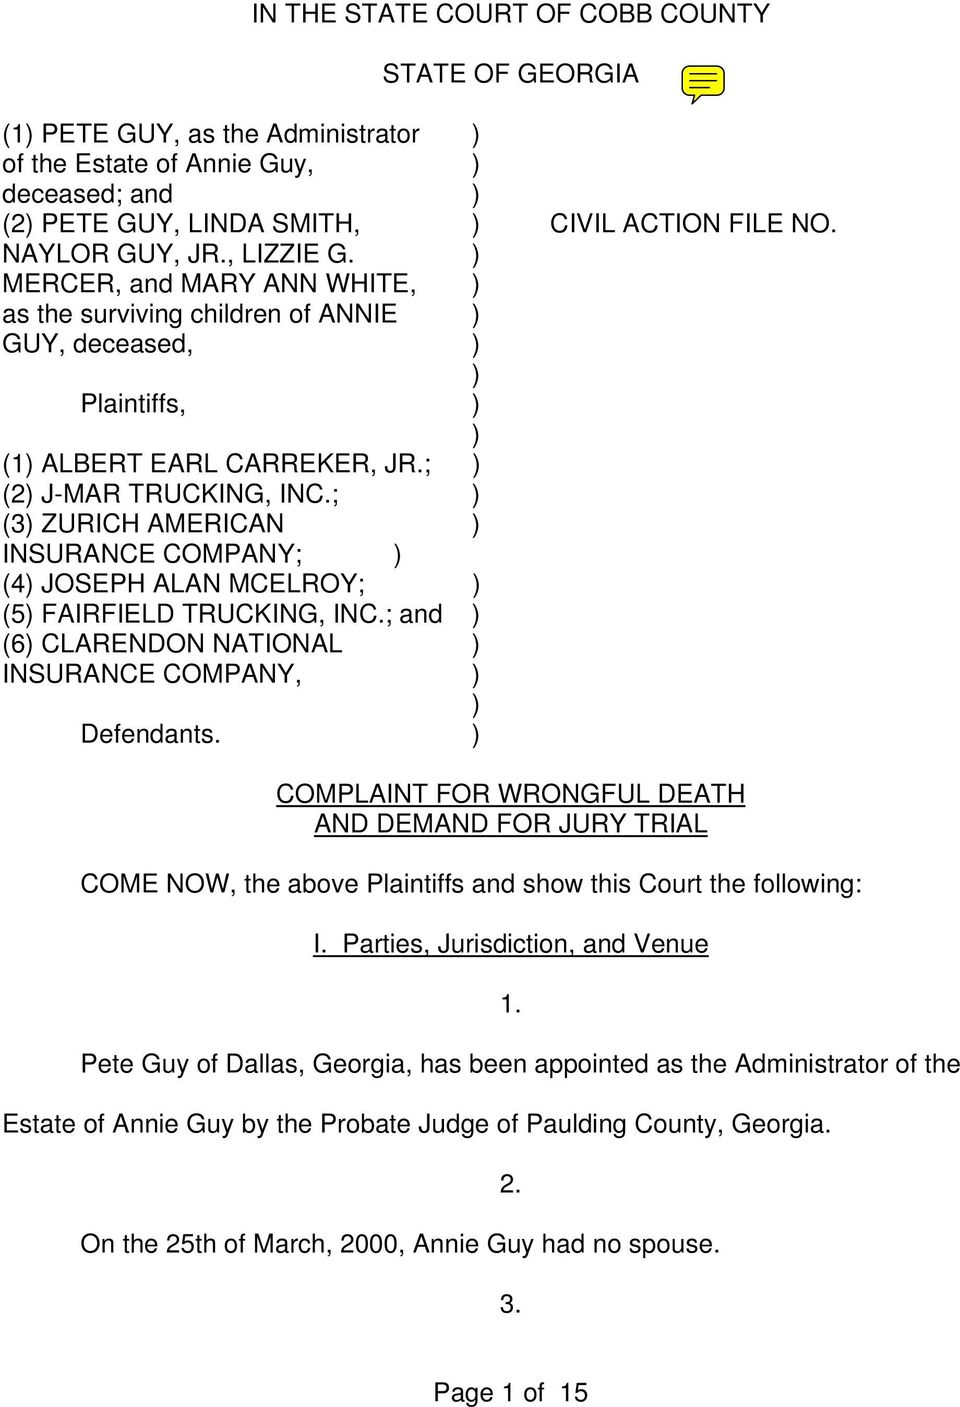 IN THE STATE COURT OF COBB COUNTY STATE OF GEORGIA - PDF